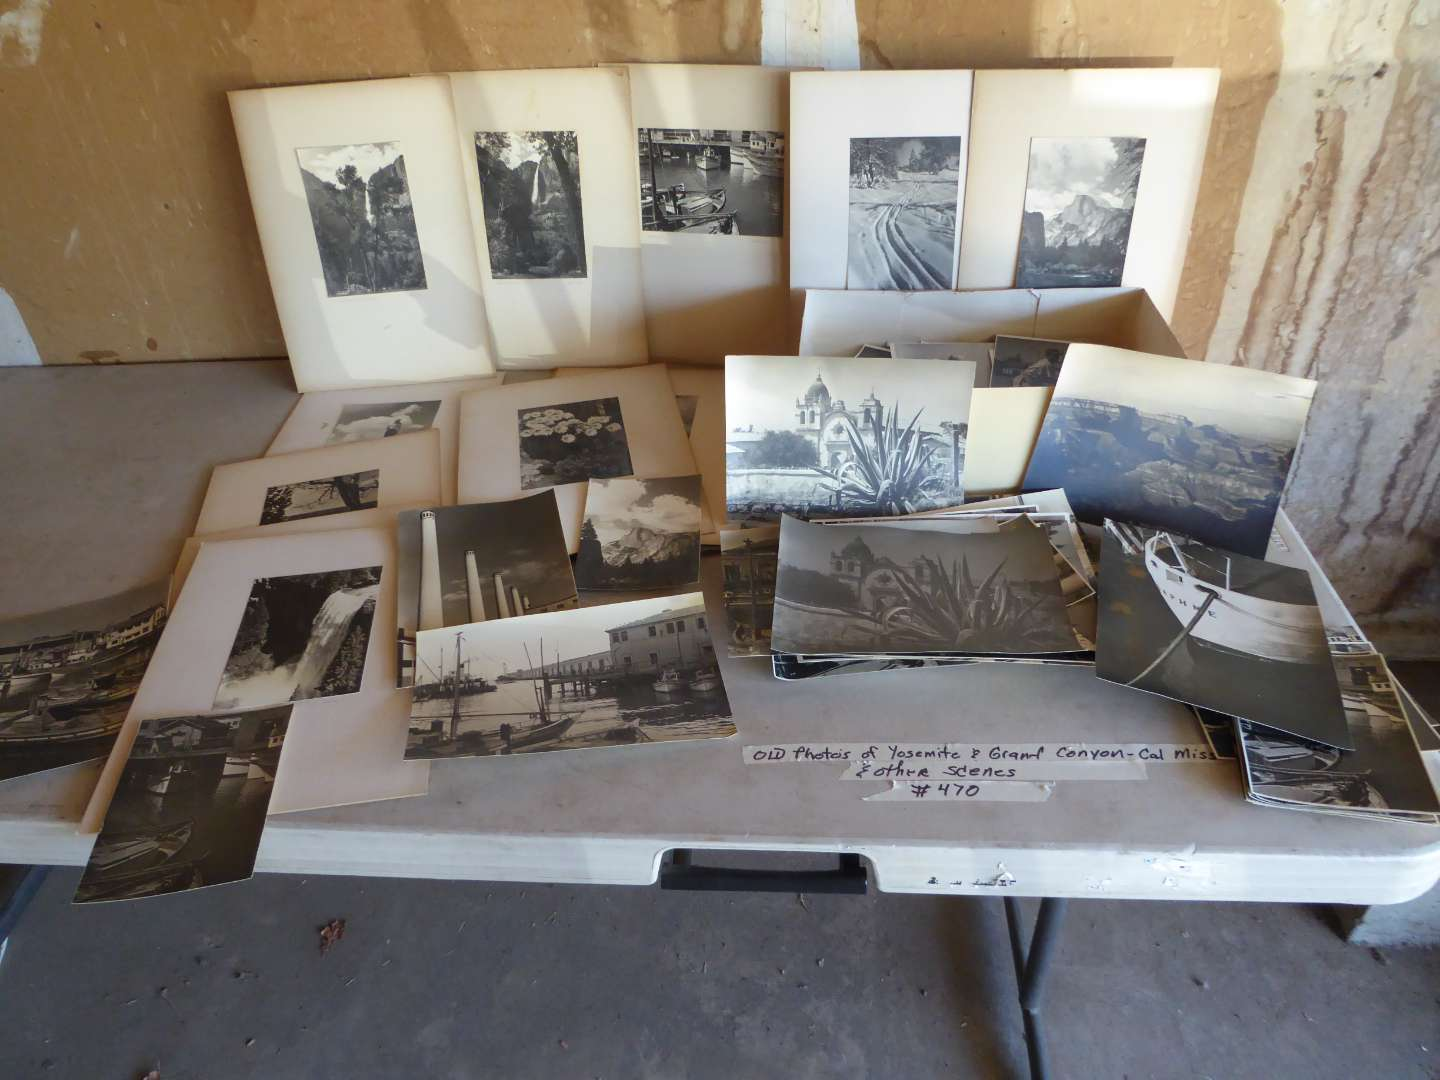 Lot # 470 - Vintage Black & White Photos (Yosemite, Grand Canyon -Cal Mission & Other Scenes) (main image)